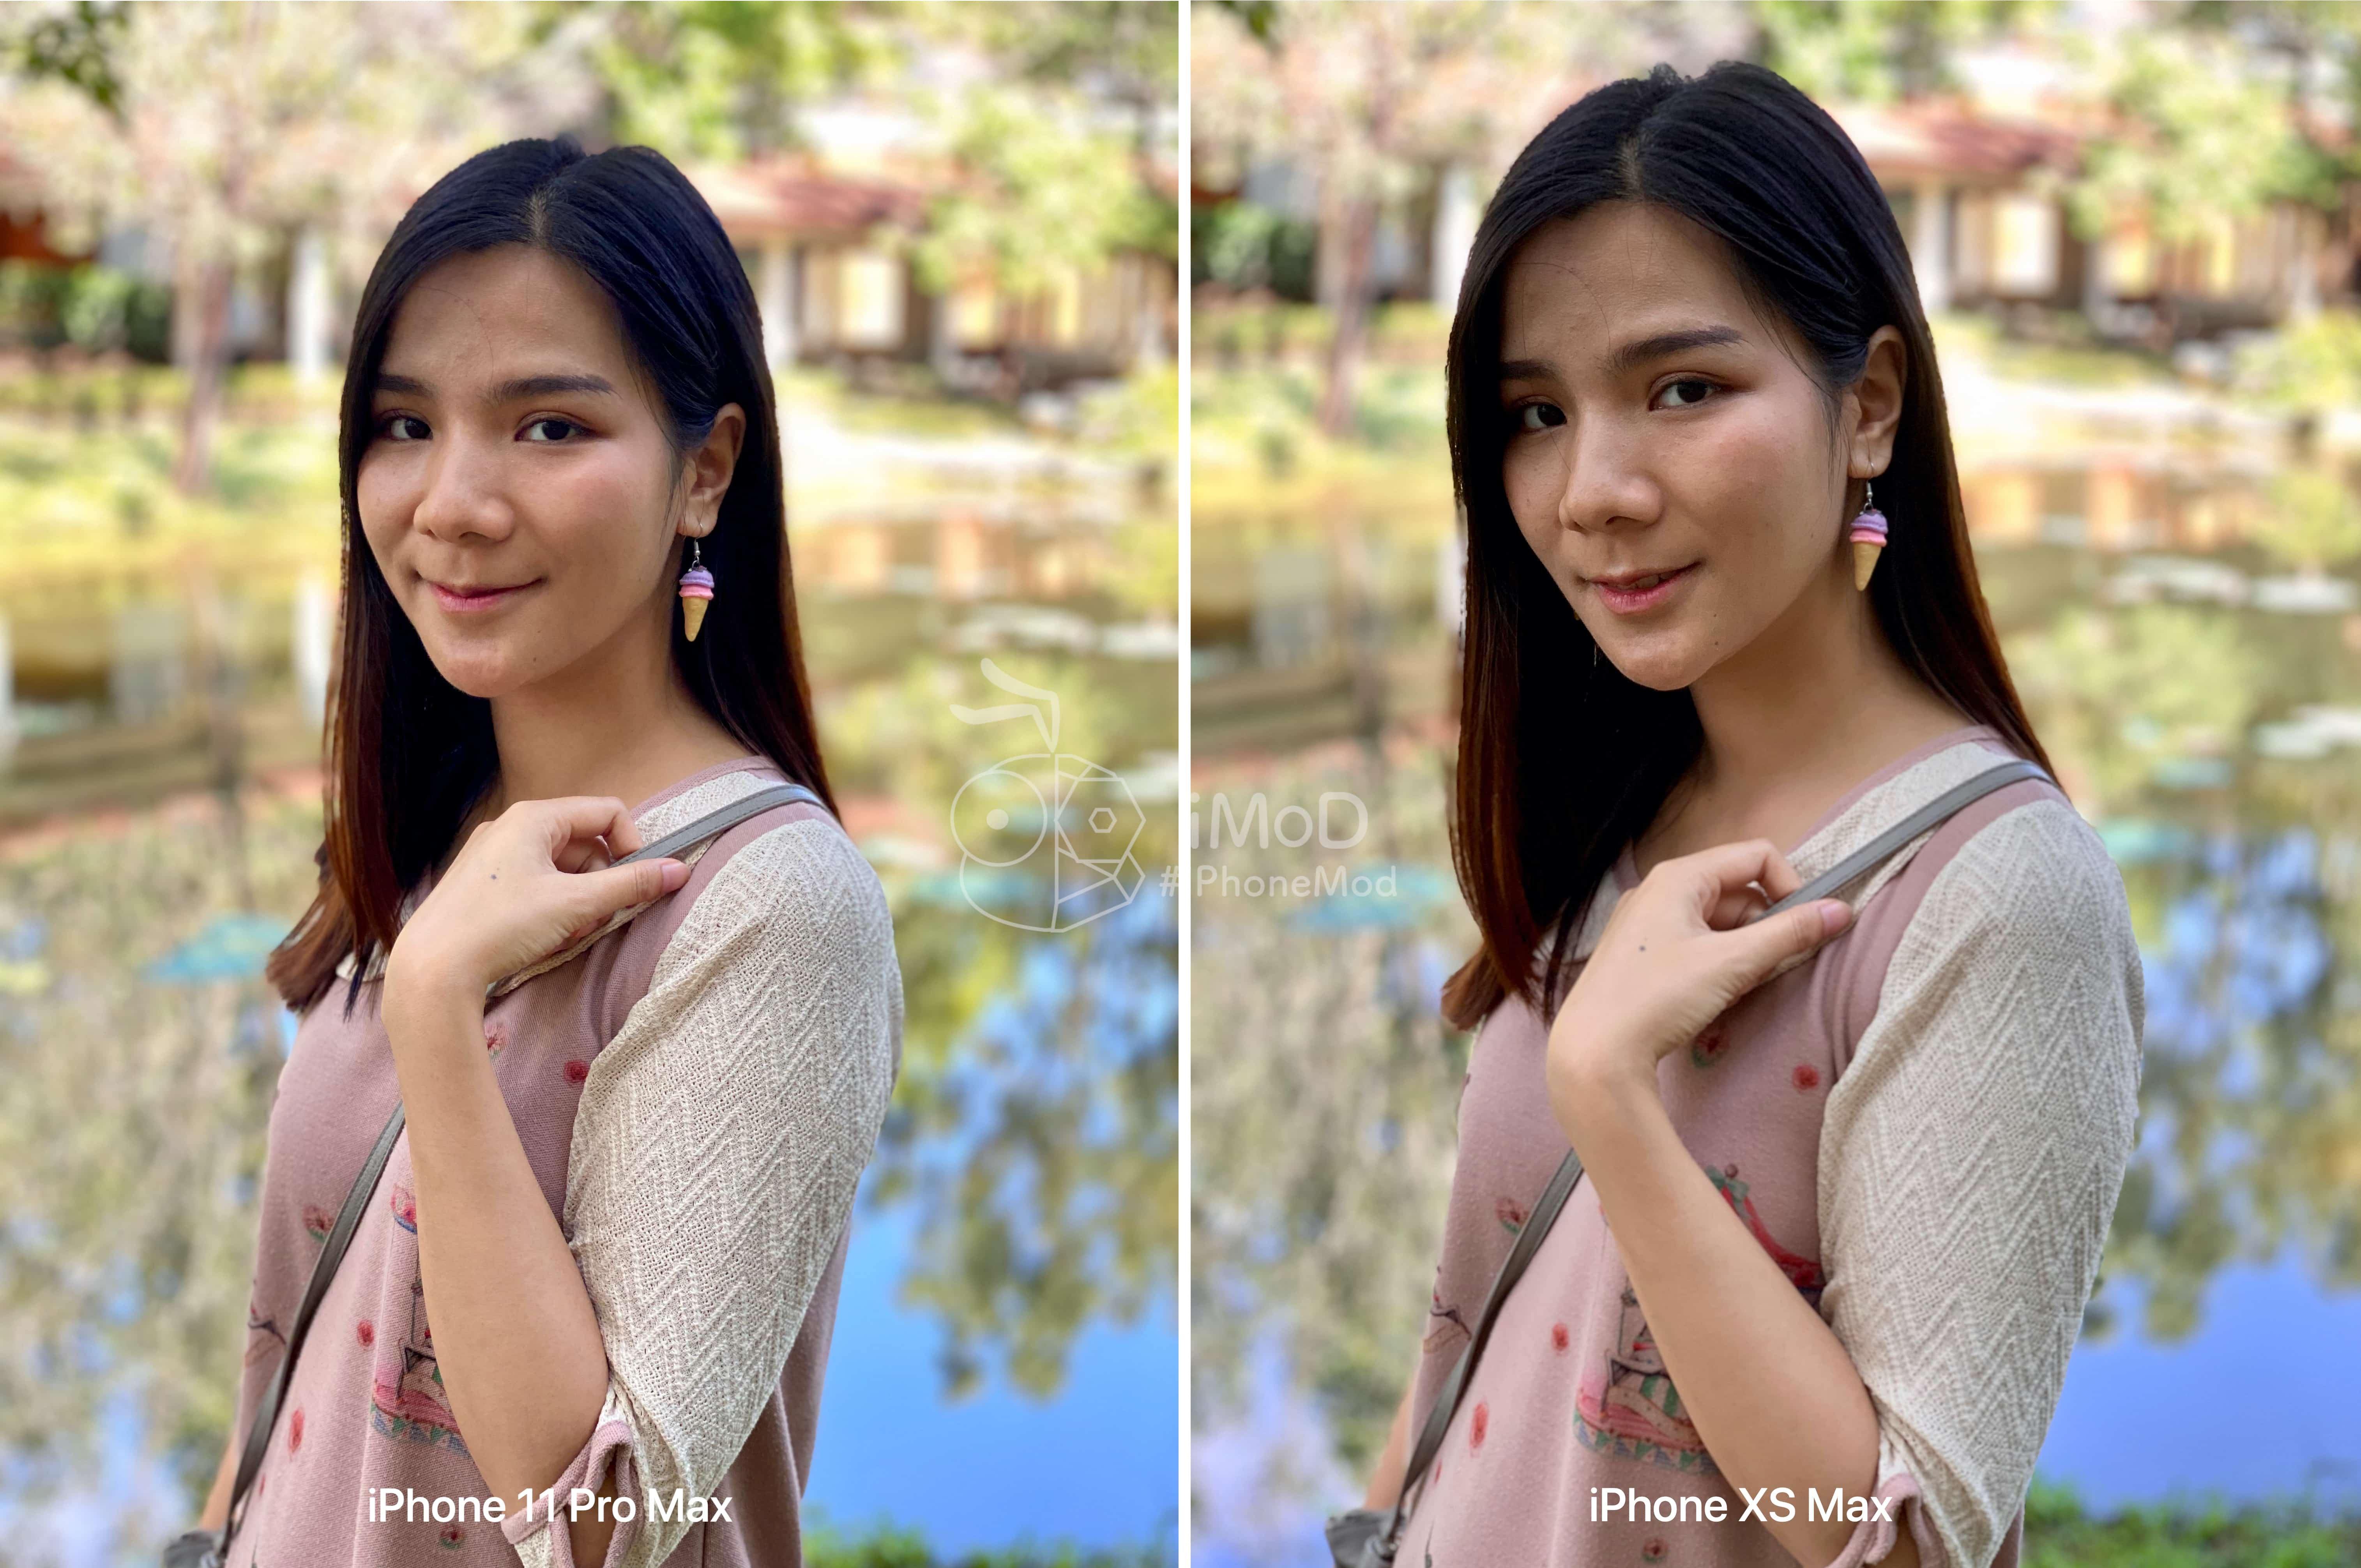 Iphone 11 Pro Max And Iphone Xs Max Portrait Compare Img 1